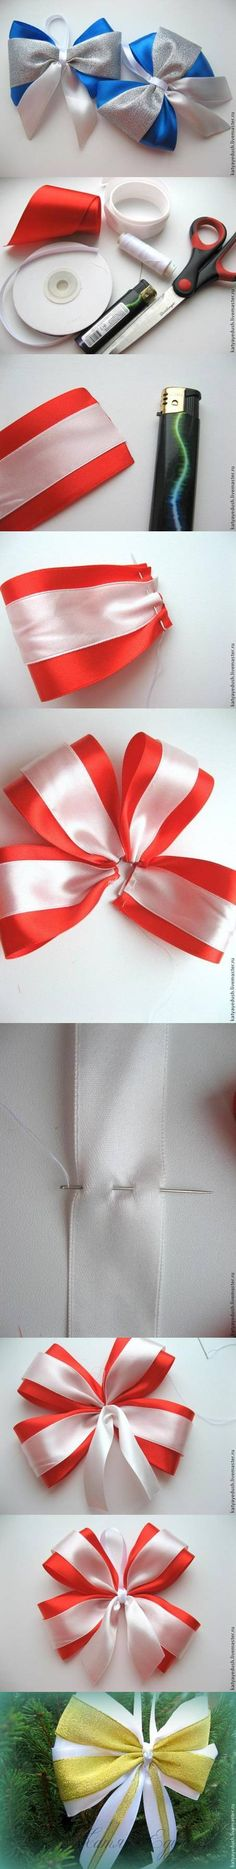 DIY Bow for Christmas Trees DIY Bow for Christmas Trees